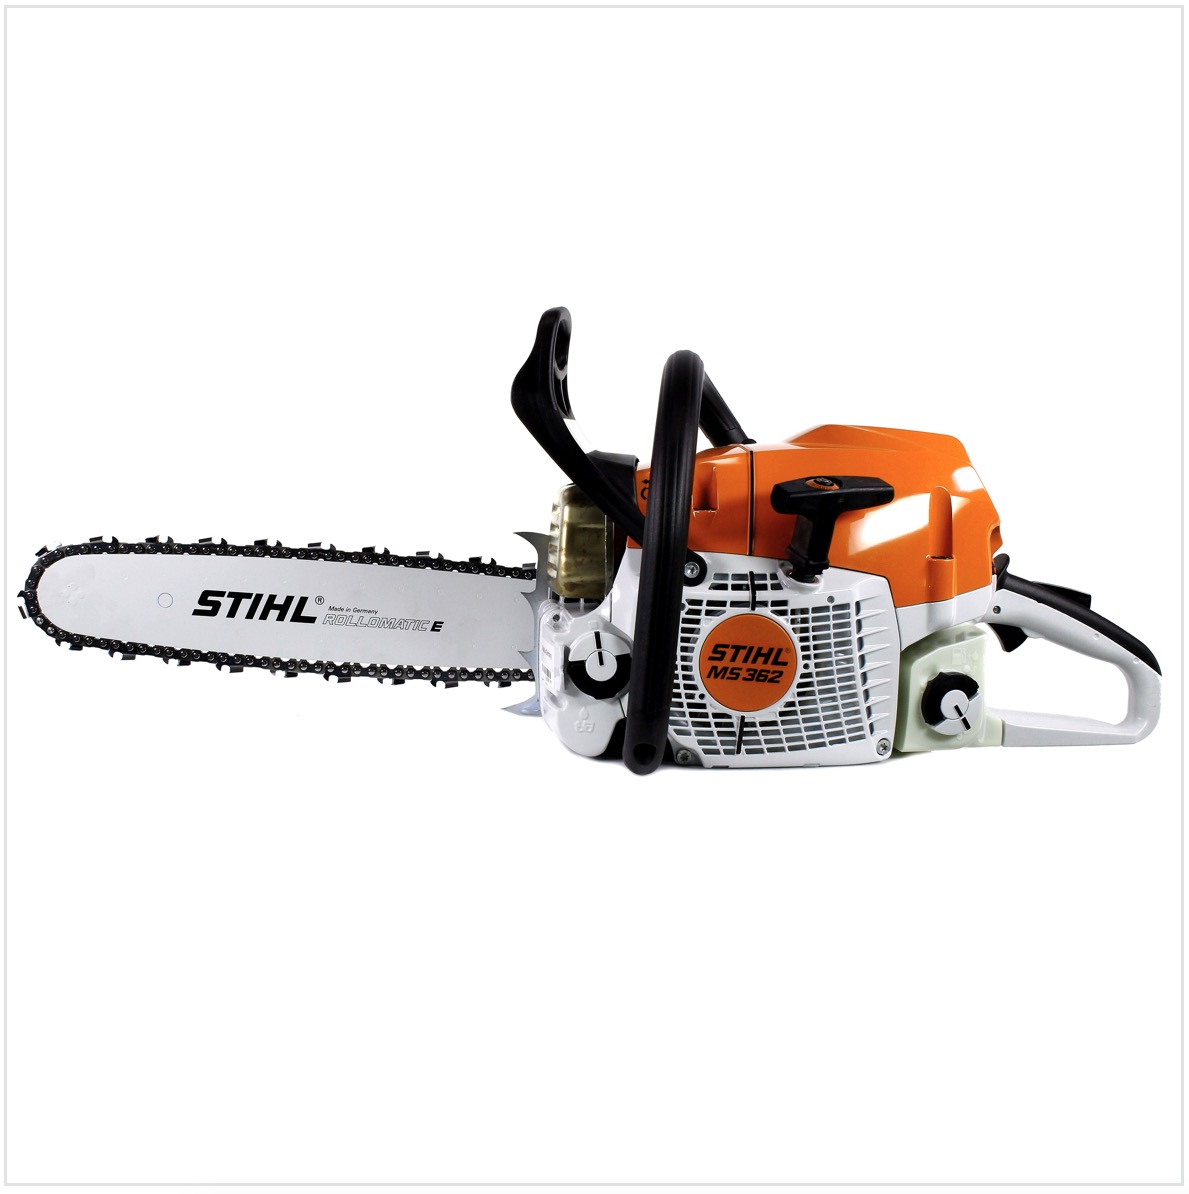 stihl ms 362 c kettens ge motors ge mit 37 cm 1 6 mm kette 1140 011 3075 ebay. Black Bedroom Furniture Sets. Home Design Ideas